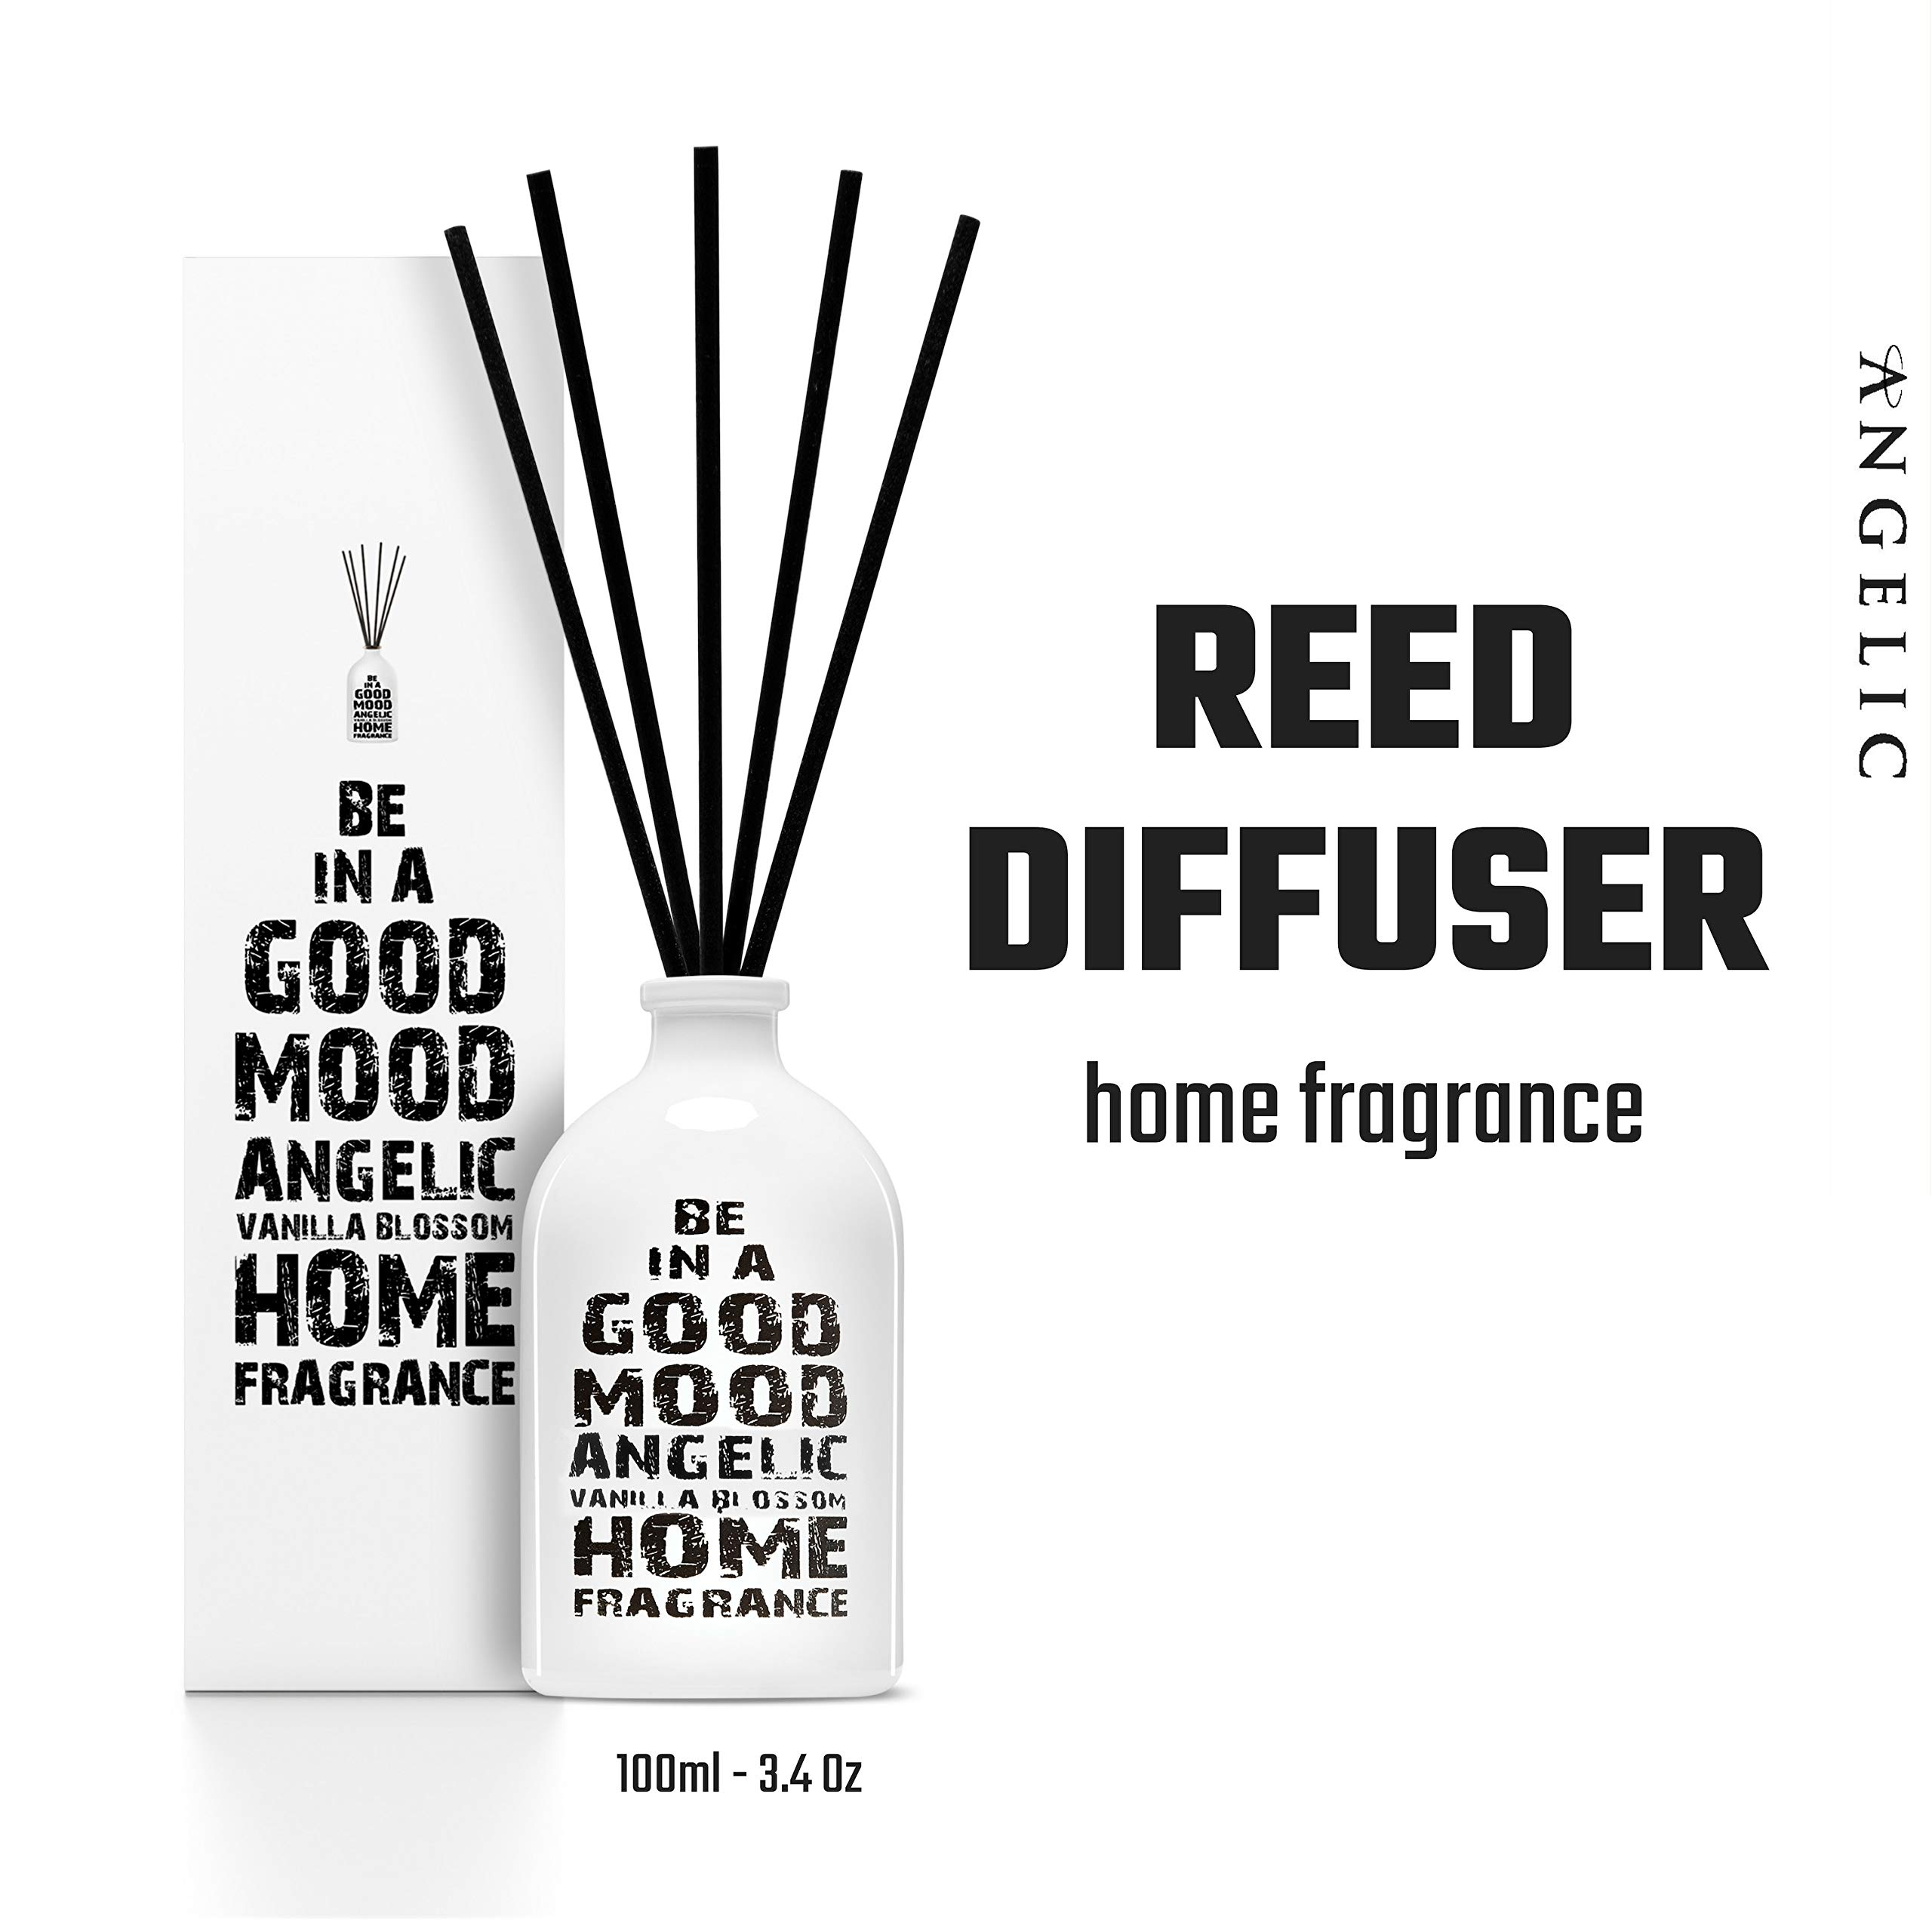 Be in a Good Mood Aromatherapy Diffuser Sticks | Reed Diffuser Set | Aromatic Home Fragrance Set | Essential Oil Diffuser Sticks, Made of Natural Scented Oils Blend - 6 Pack (Vanilla Blossom) by Be in a Good Mood (Image #7)